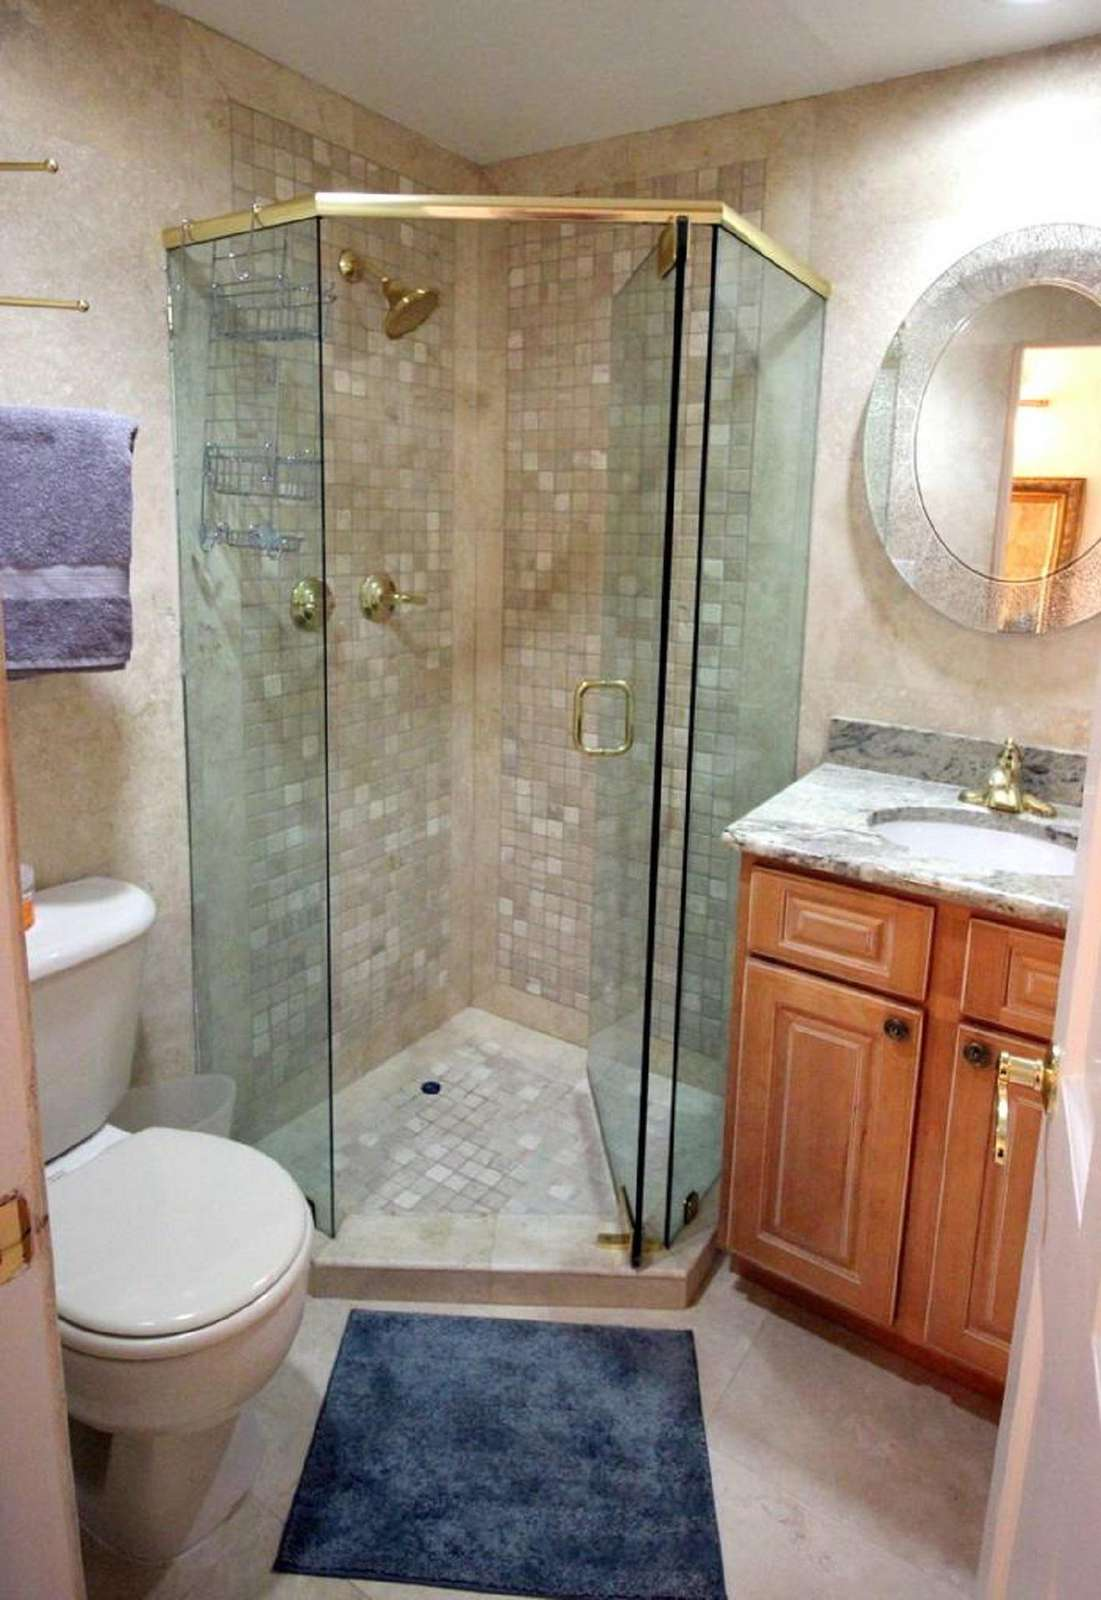 Full Bathroom in Hallway